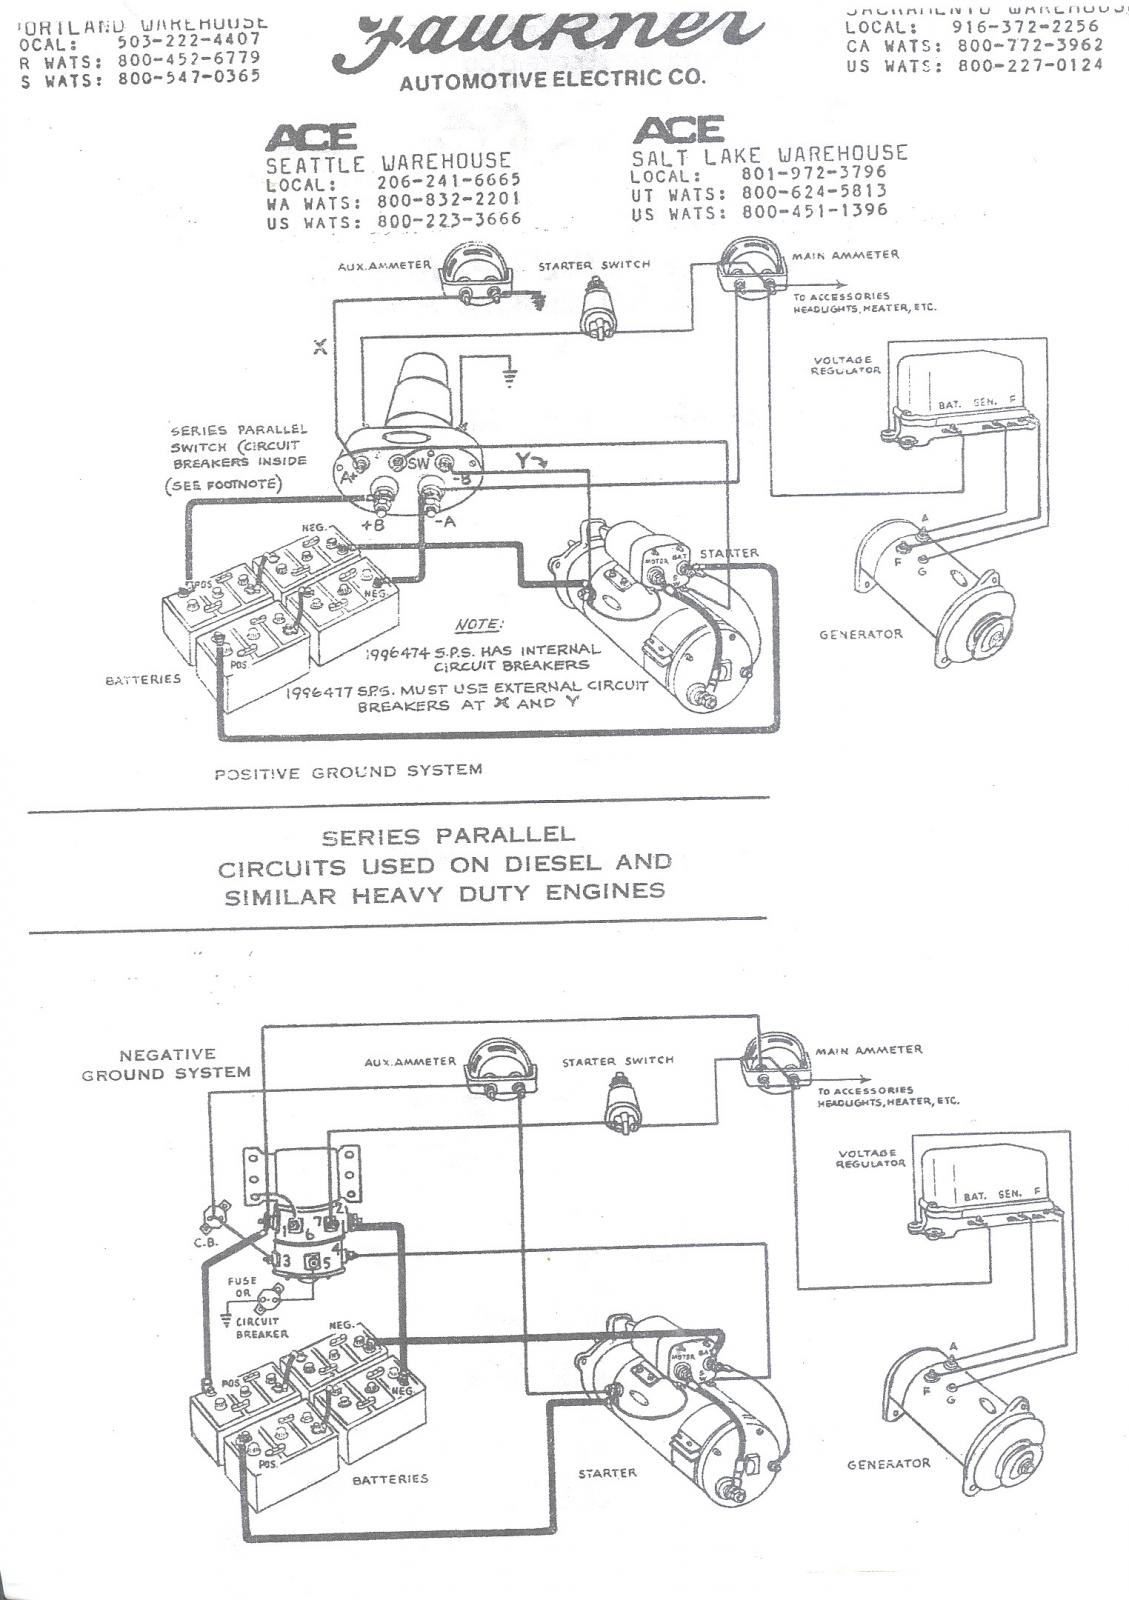 Wiring Schematic For Series Parallel Switch - Antique & Classic Mack - Parallel Wiring Diagram